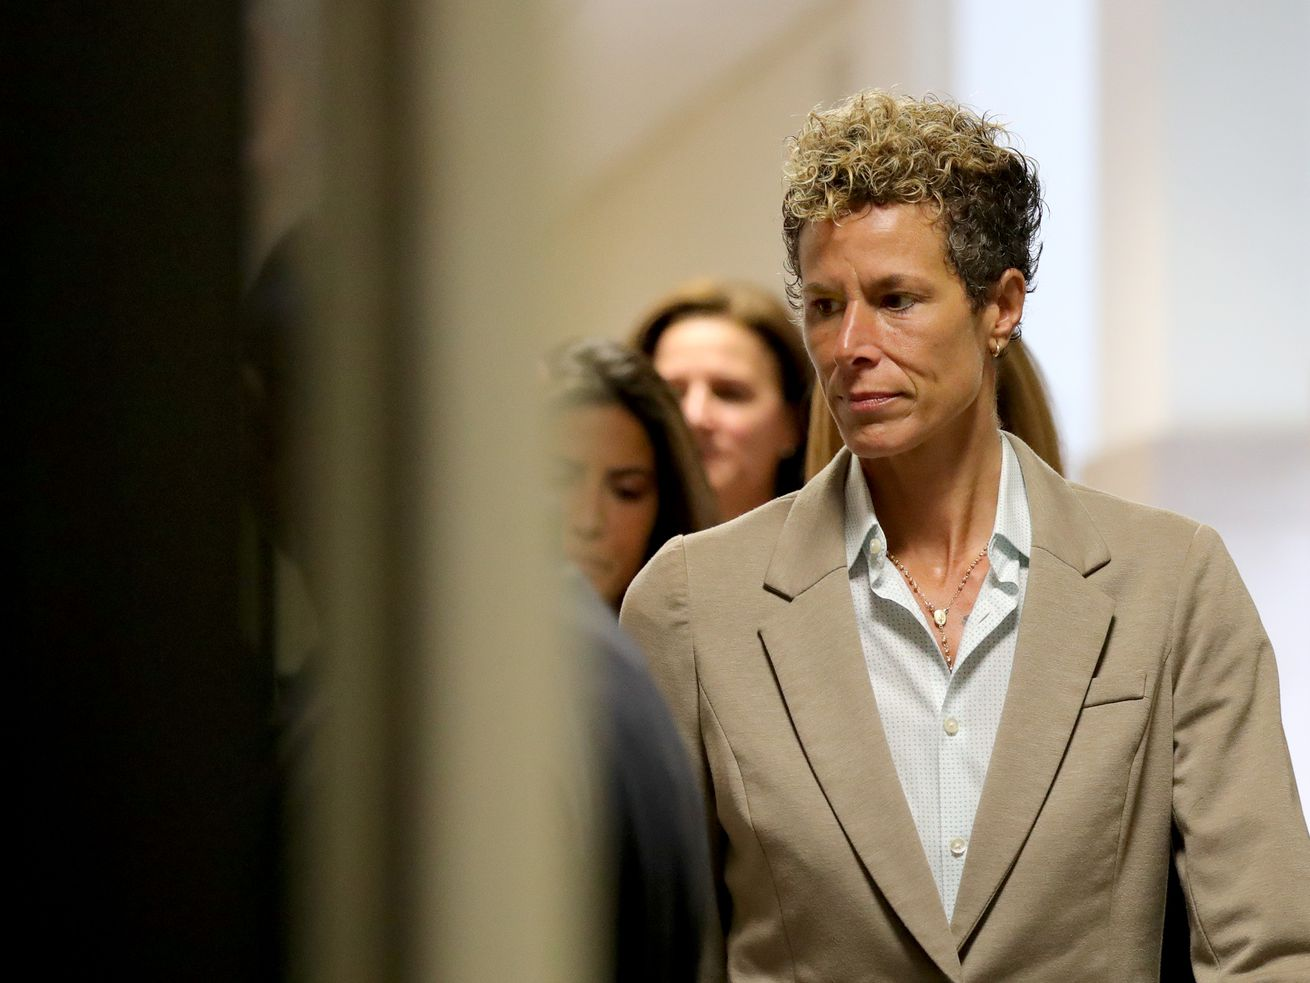 Andrea Constand arrives at Bill Cosby's sentencing hearing in Norristown, Pennsylvania, on September 24, 2018.